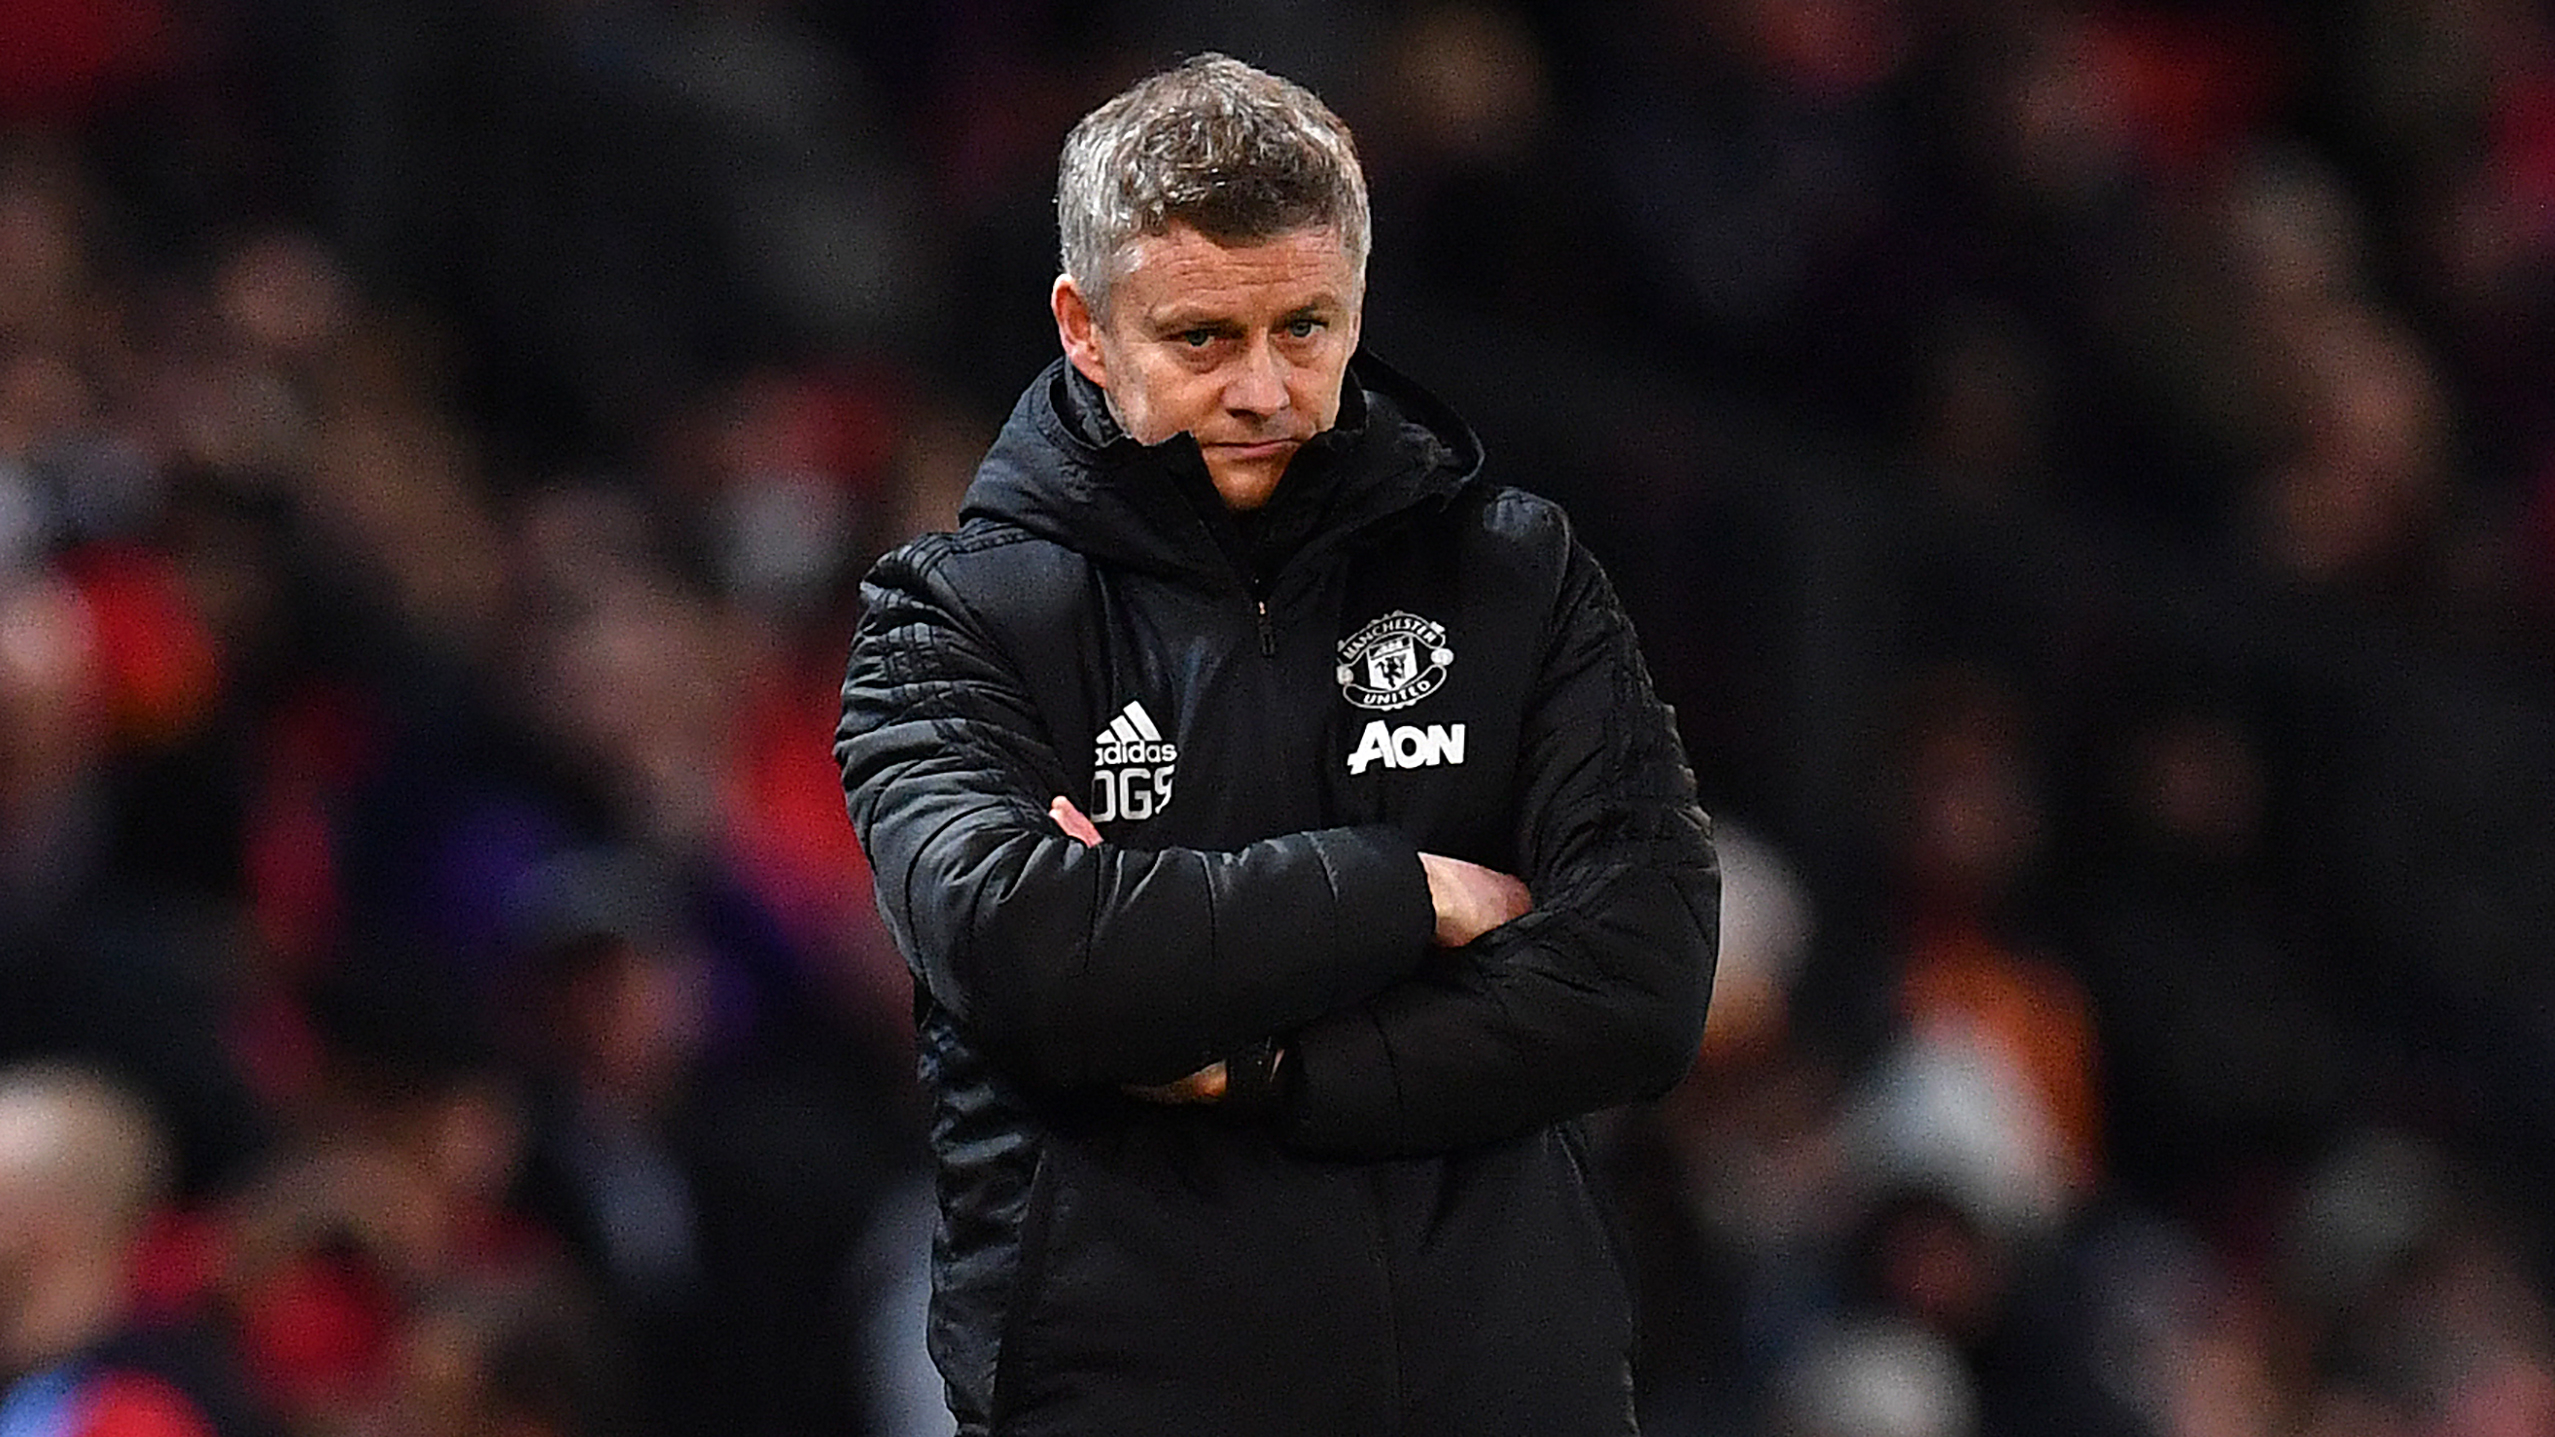 Man Utd board members hoping Mauricio Pochettino replaces Ole Gunnar Solskjaer - Bóng Đá